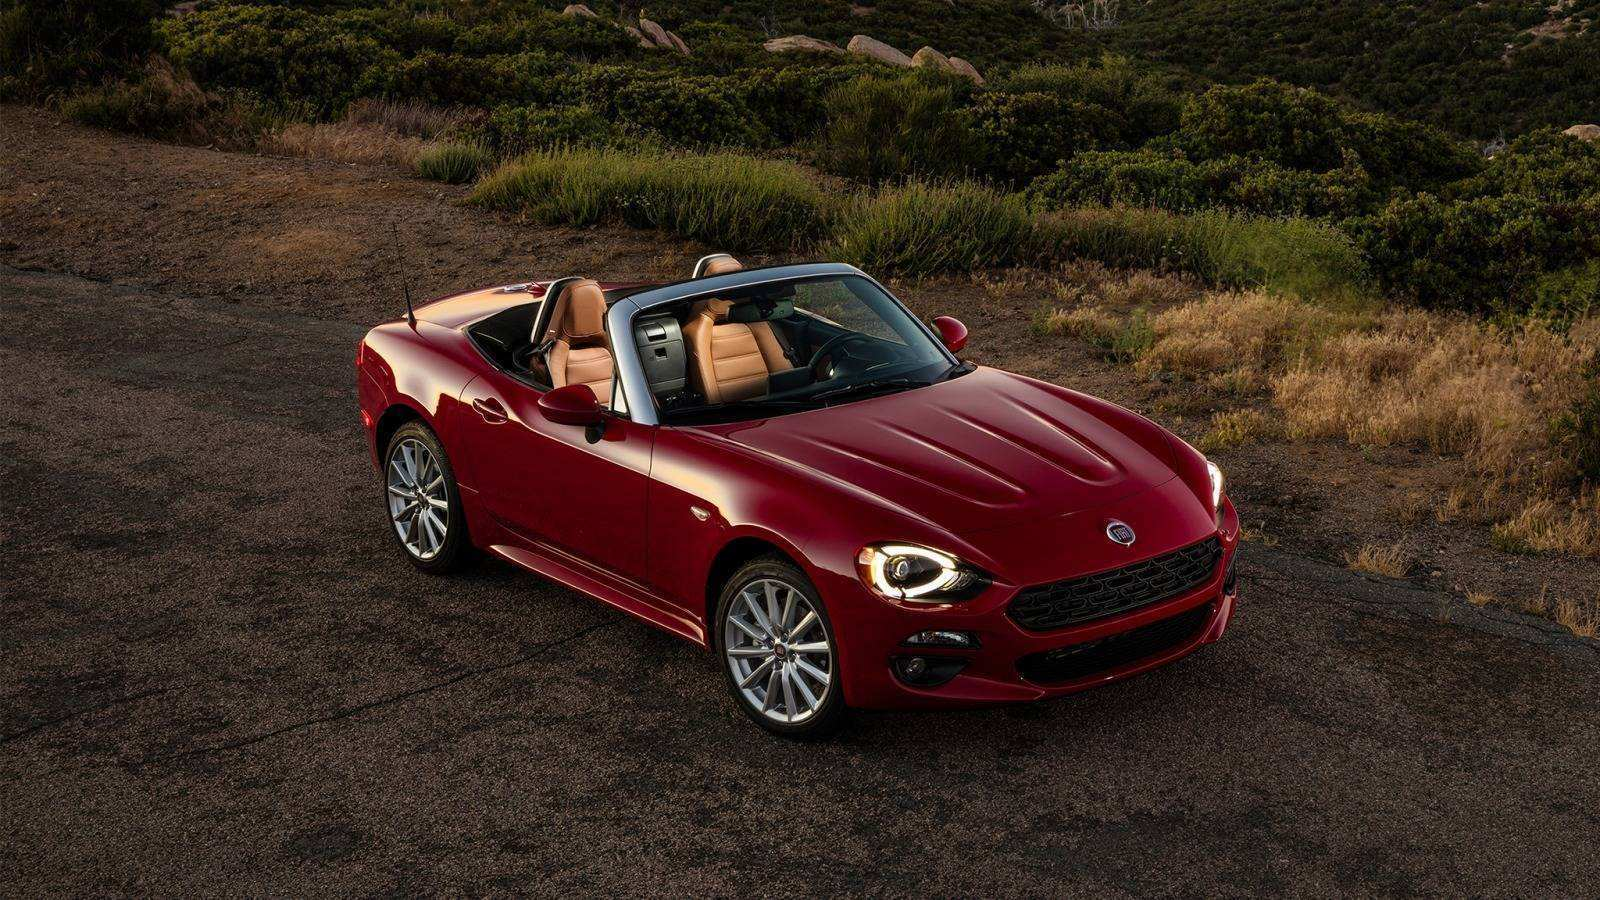 25 New 2019 Fiat 124 Release Date Ratings with 2019 Fiat 124 Release Date